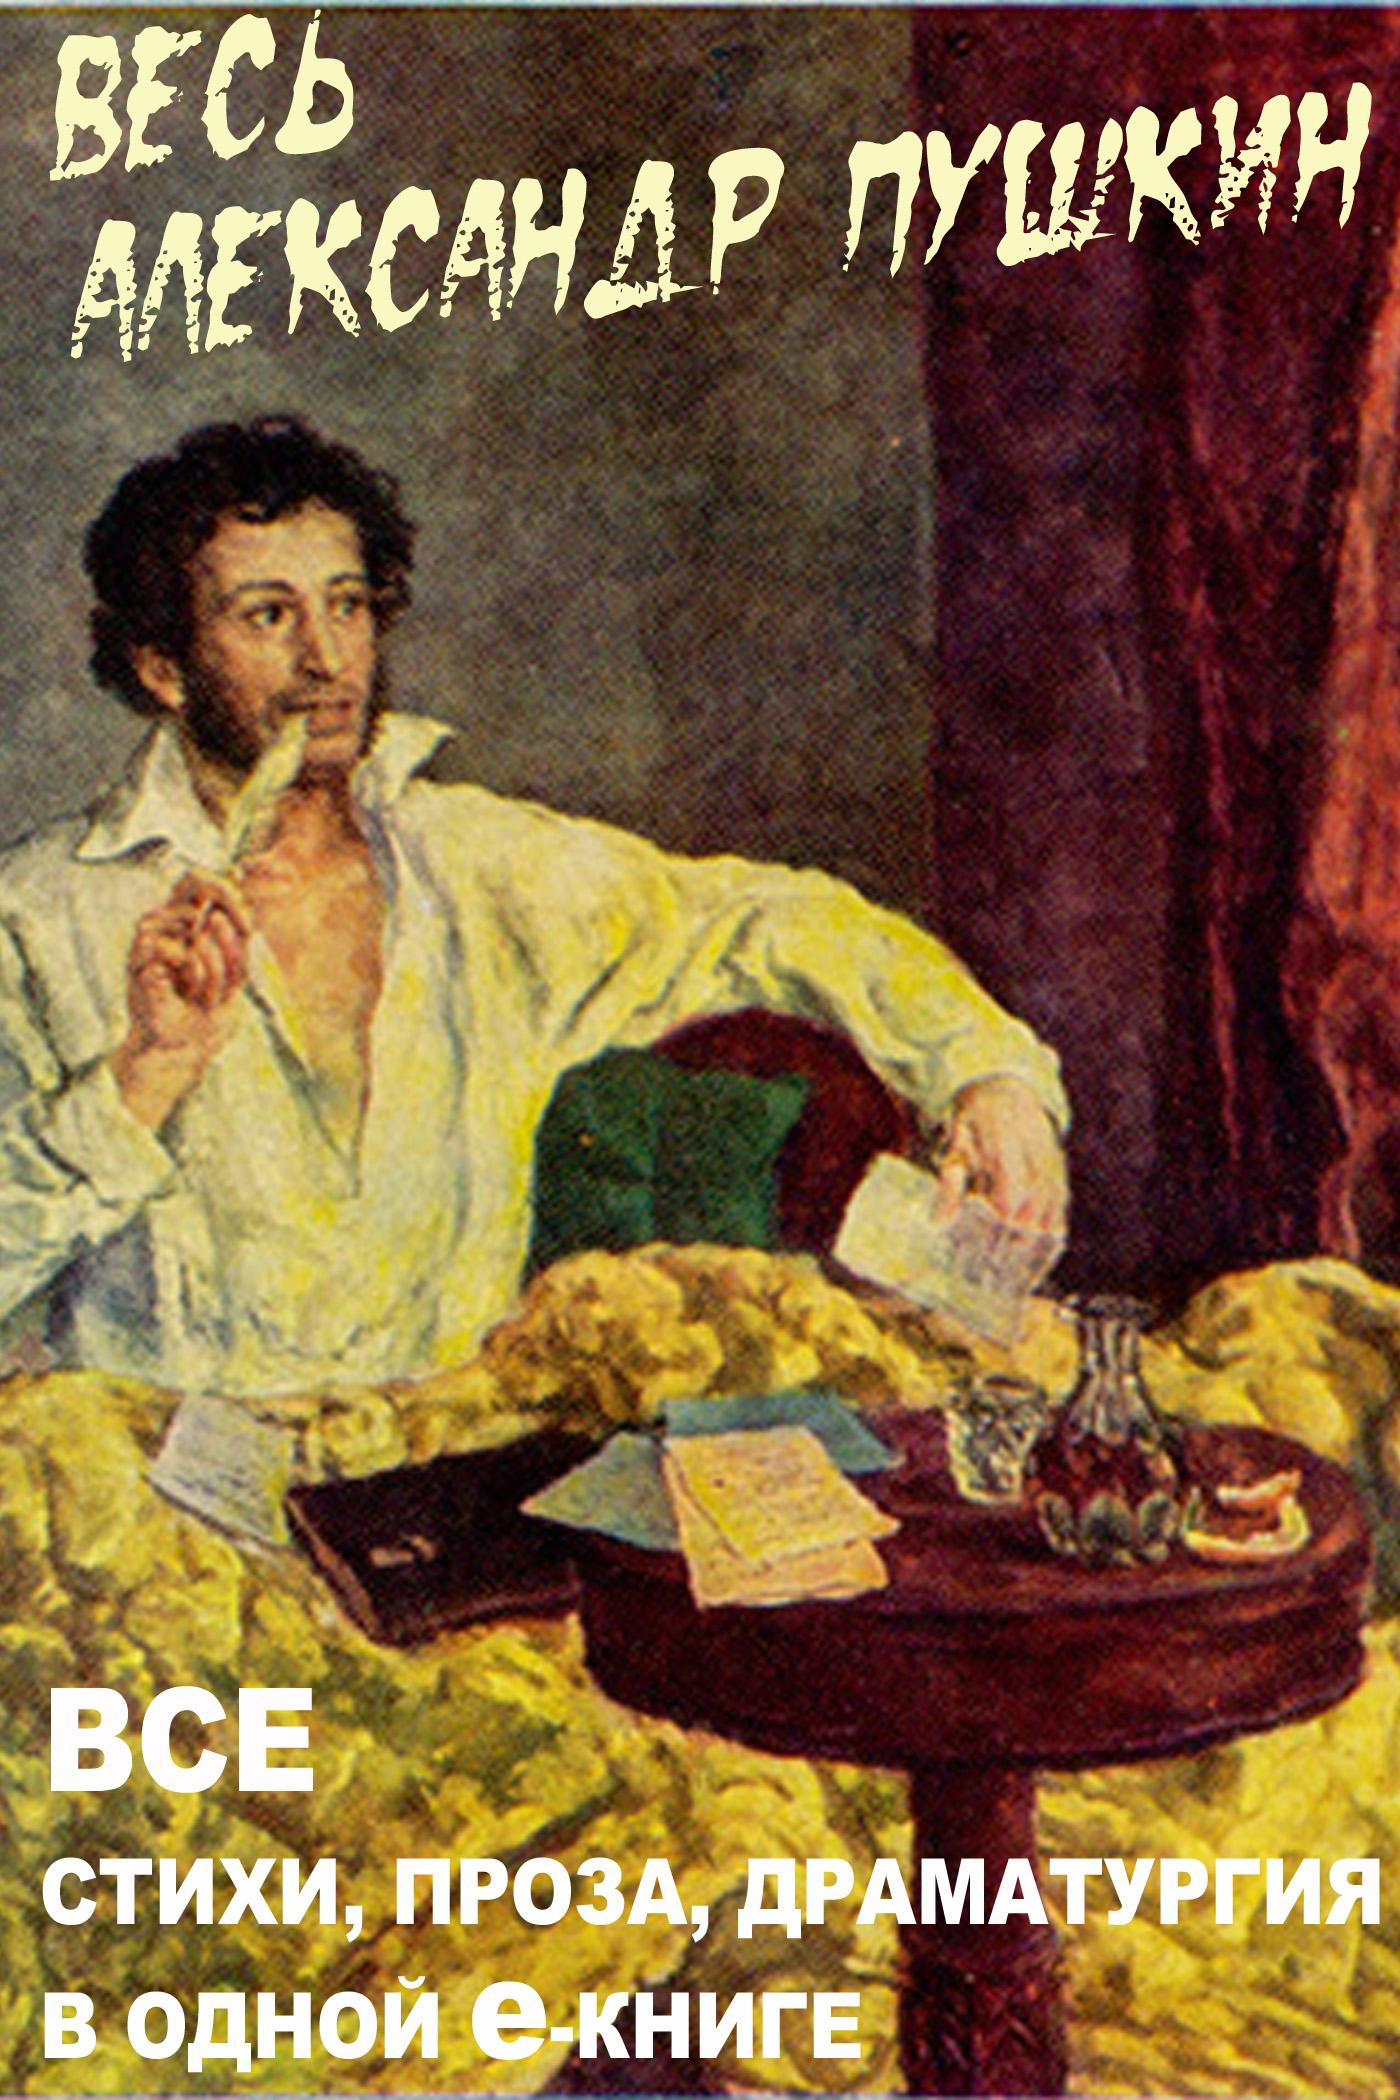 A. Pushkin in complete